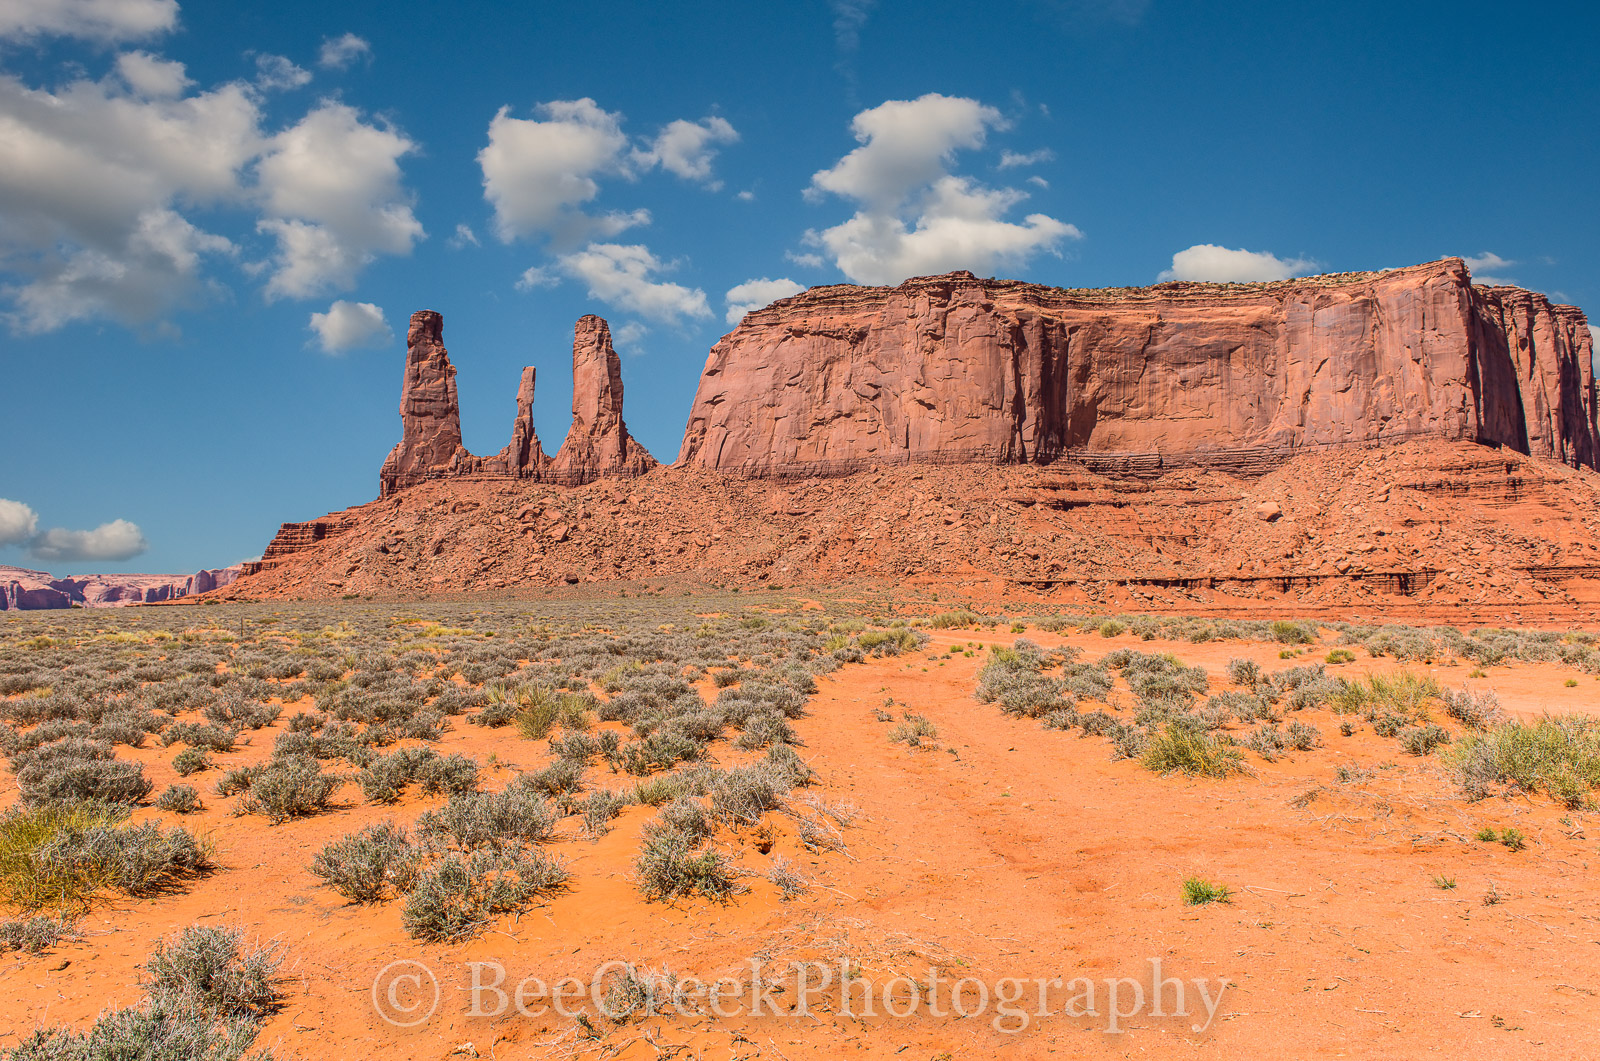 Monument Valley- The three sisters at Monument Valley Arizona. This Navajo destination has these unique geologic...